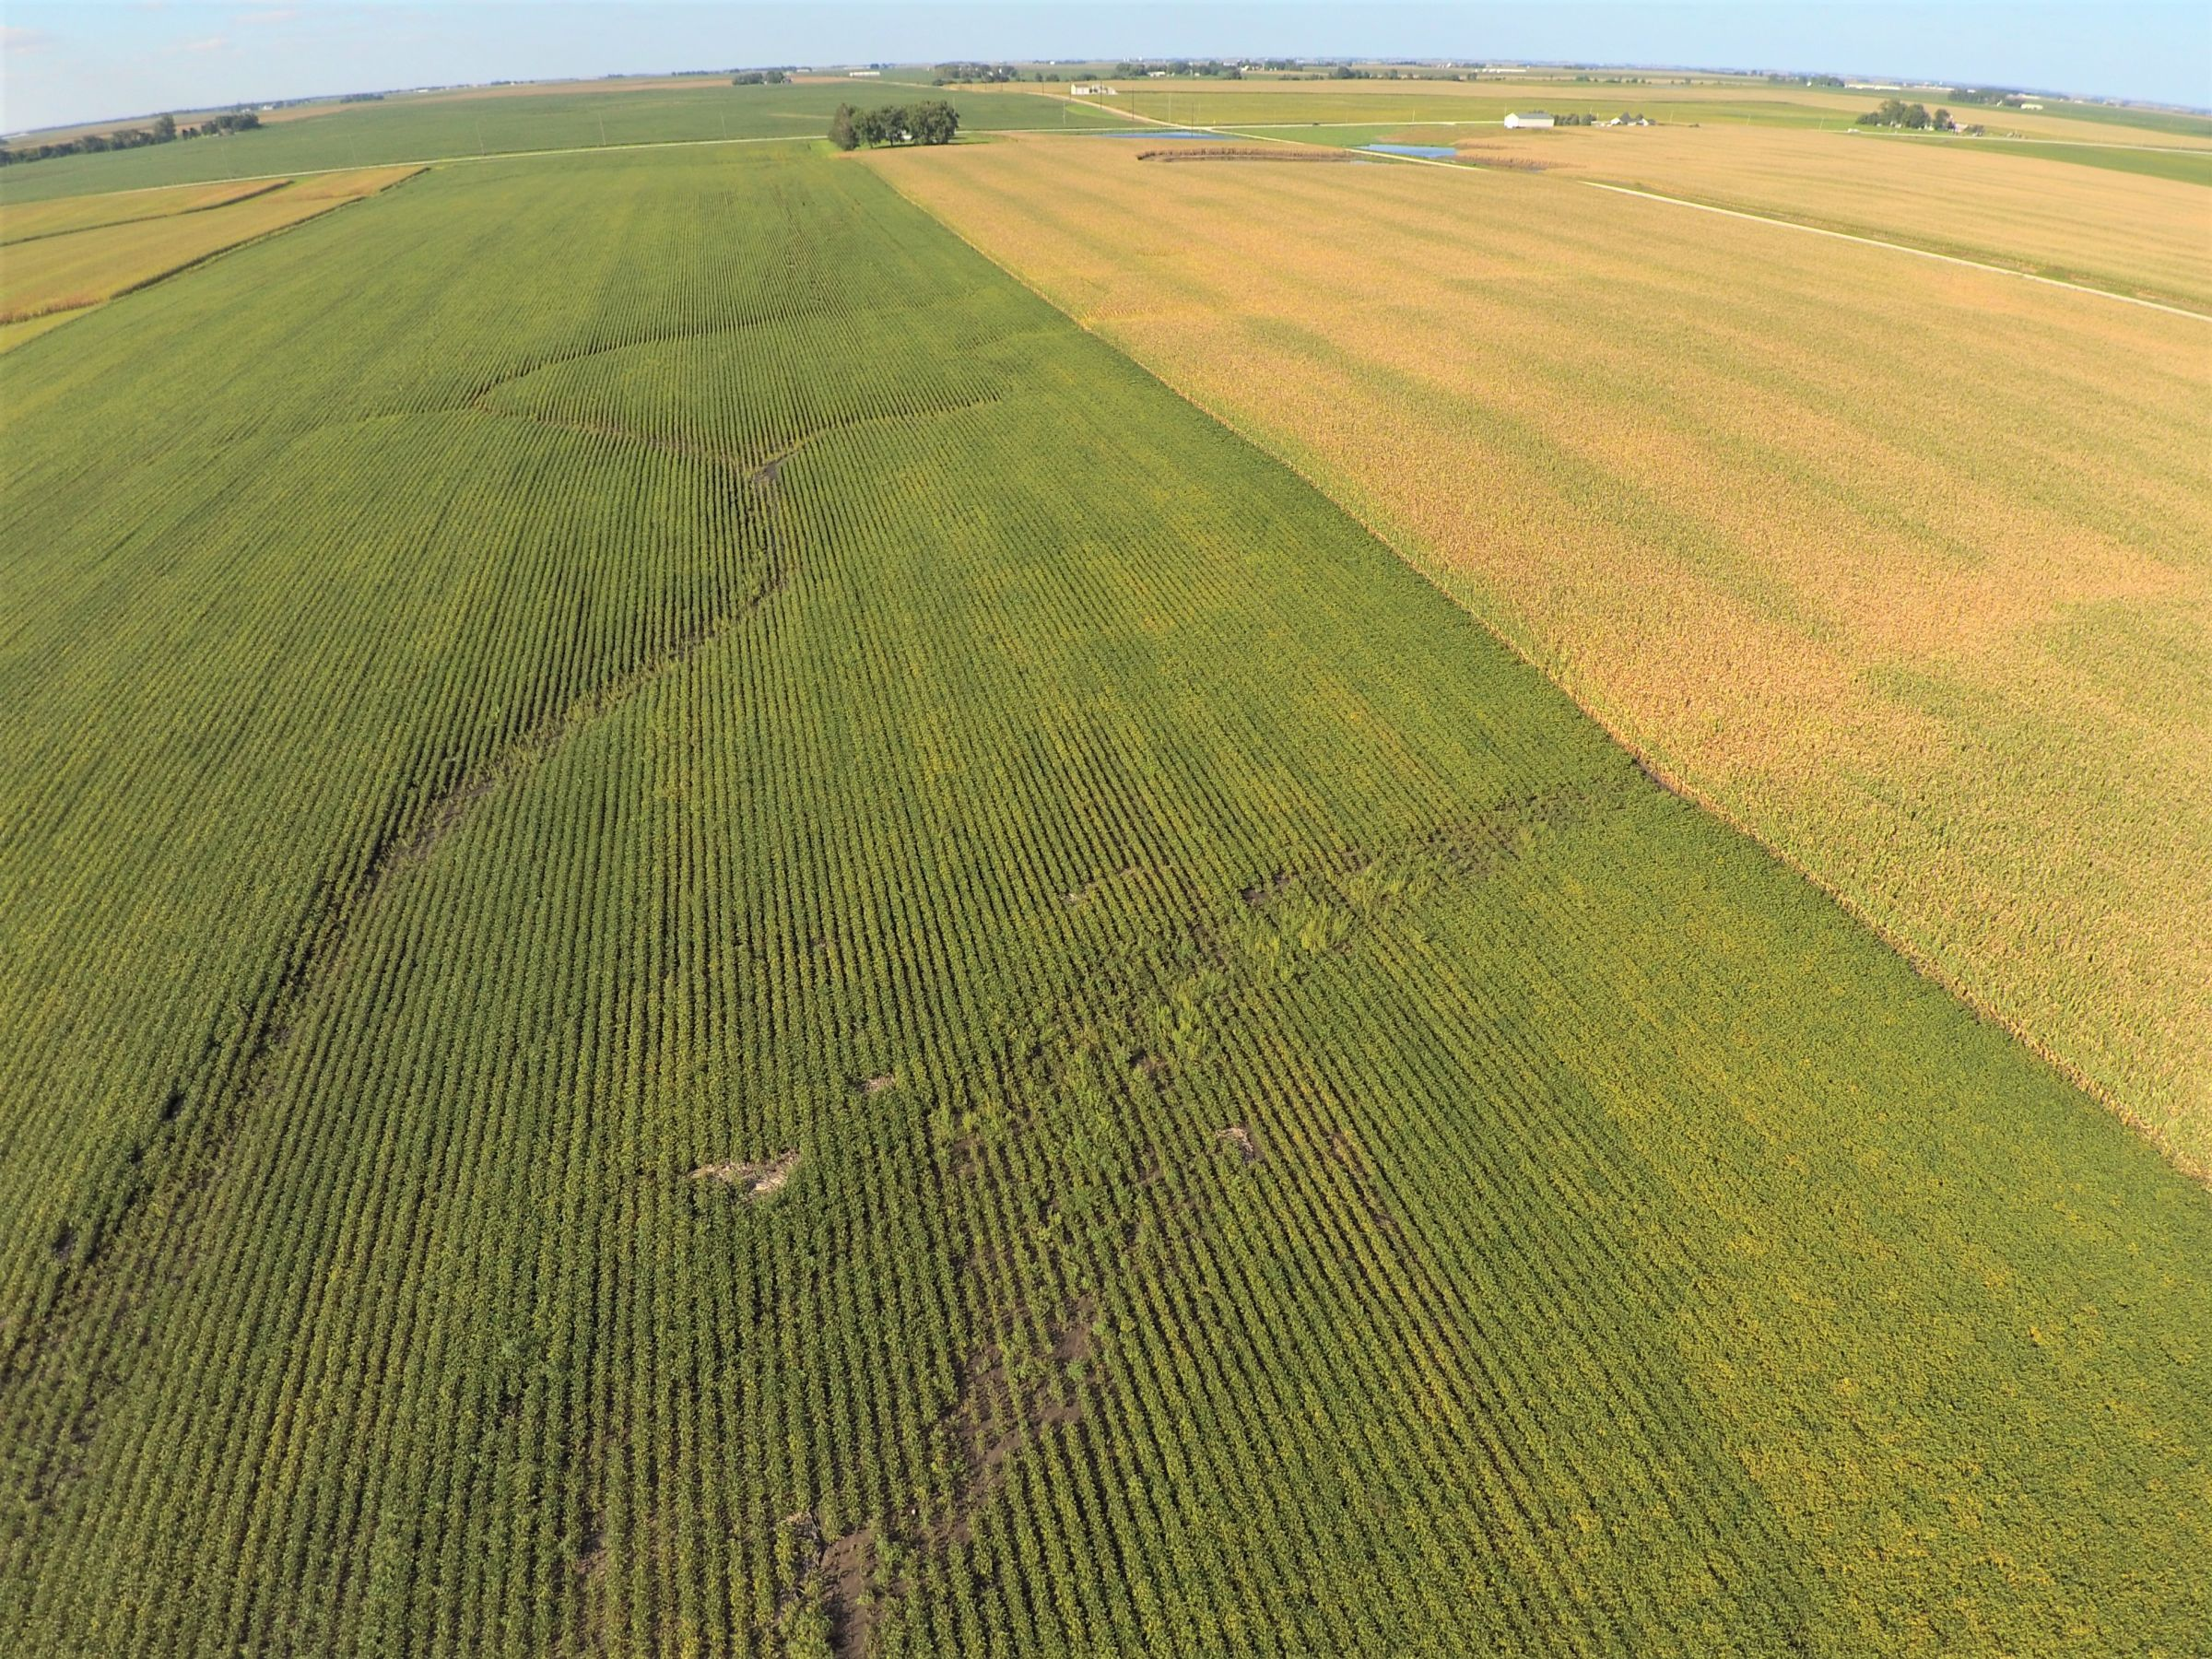 PeoplesCompany-Farmland in Hamilton County-IA-Kantor-Ave-2